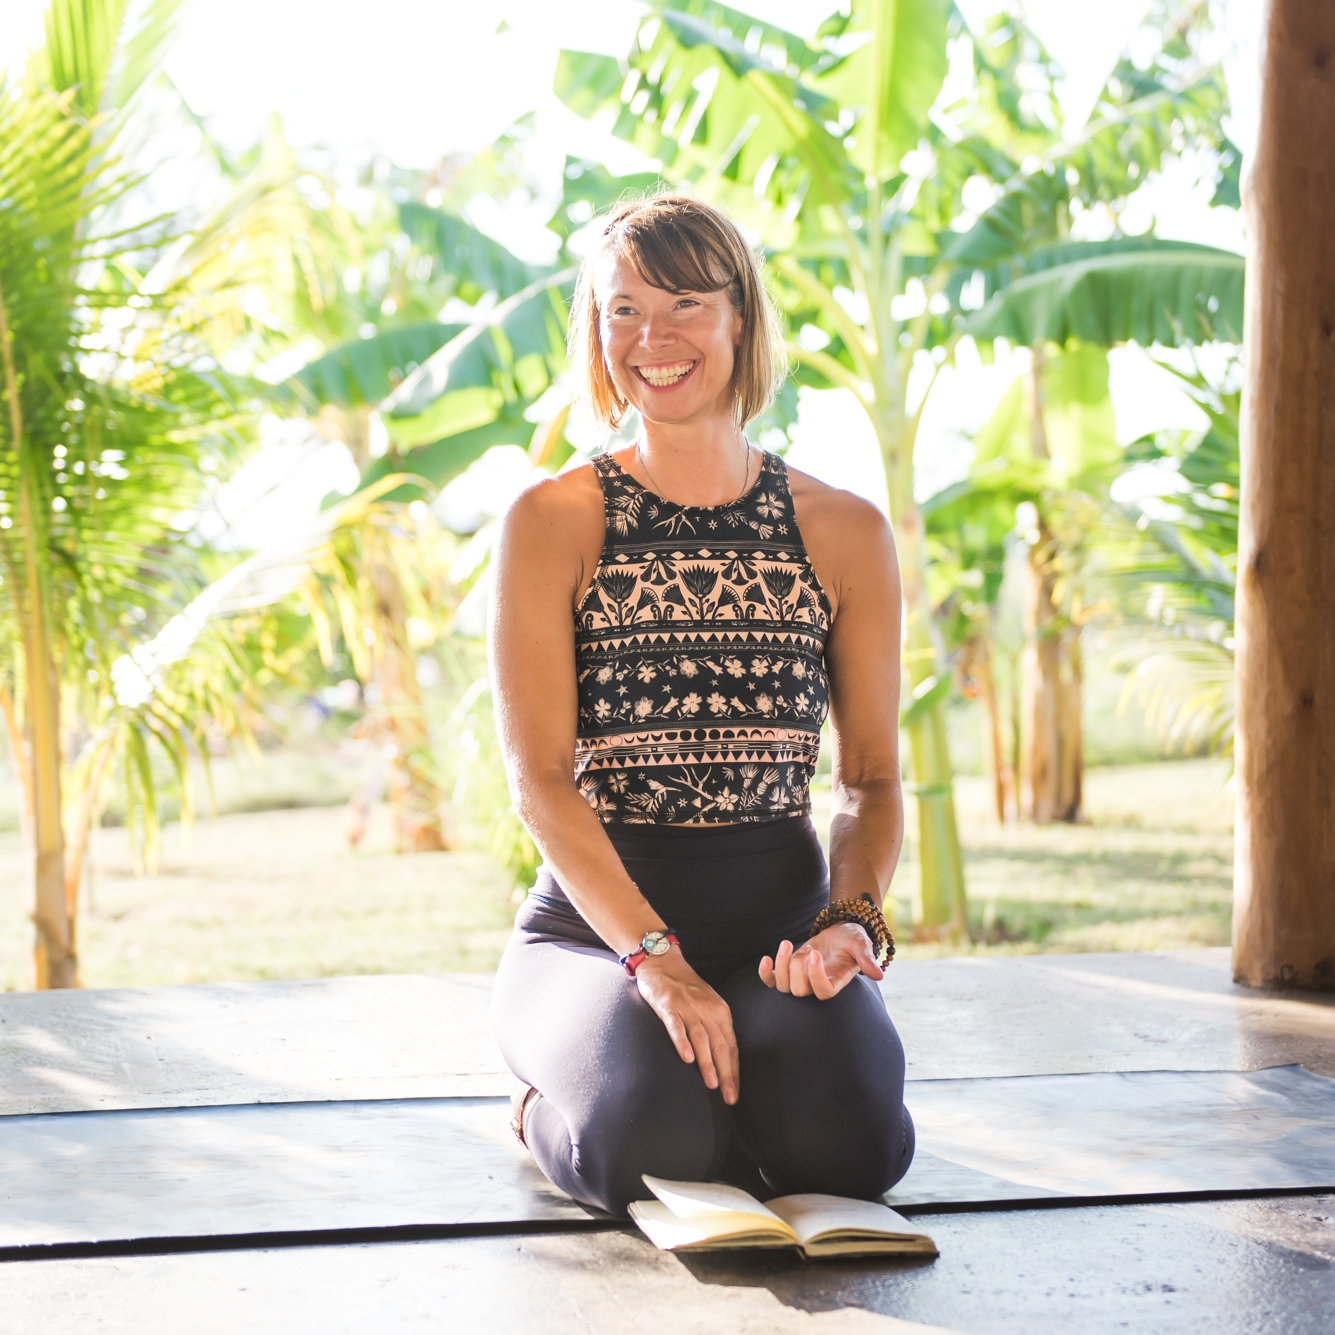 - Nid's retreats always include fascia release and fitness as part of the classes offered. She empowers her clients to learn techniques to every day make the shifts towards the person and life that they wish to embody. Nid loves all her incarnations as an energy healer and coach, massage therapist, teacher of mind-body movement through yoga and Pilates, and blog writer. She is a passionate messenger on how to find your truth and live in alignment with your soul. Her work attracts people going through major life changes, long-term pain or health issues to discover how to live life with joy in mind, body, and spirit. She provides online training for movement, mind and soul at https://www.omegamovement.org/